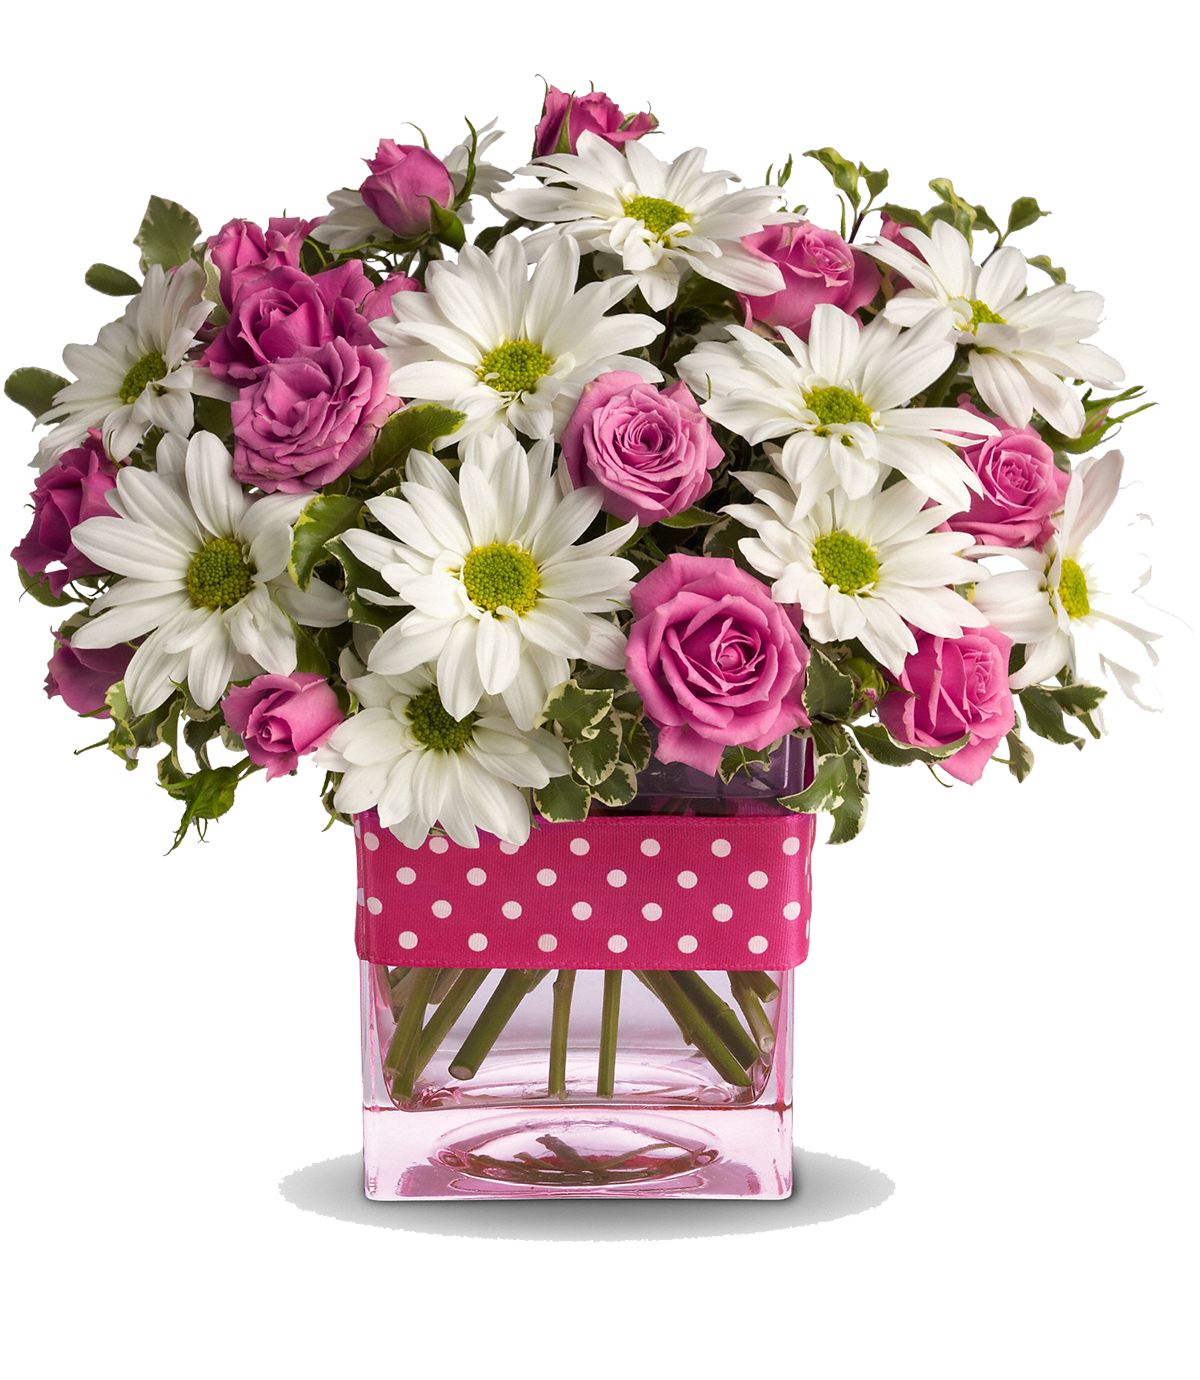 Flowers bouquet png transparent. Congratulation flower images all